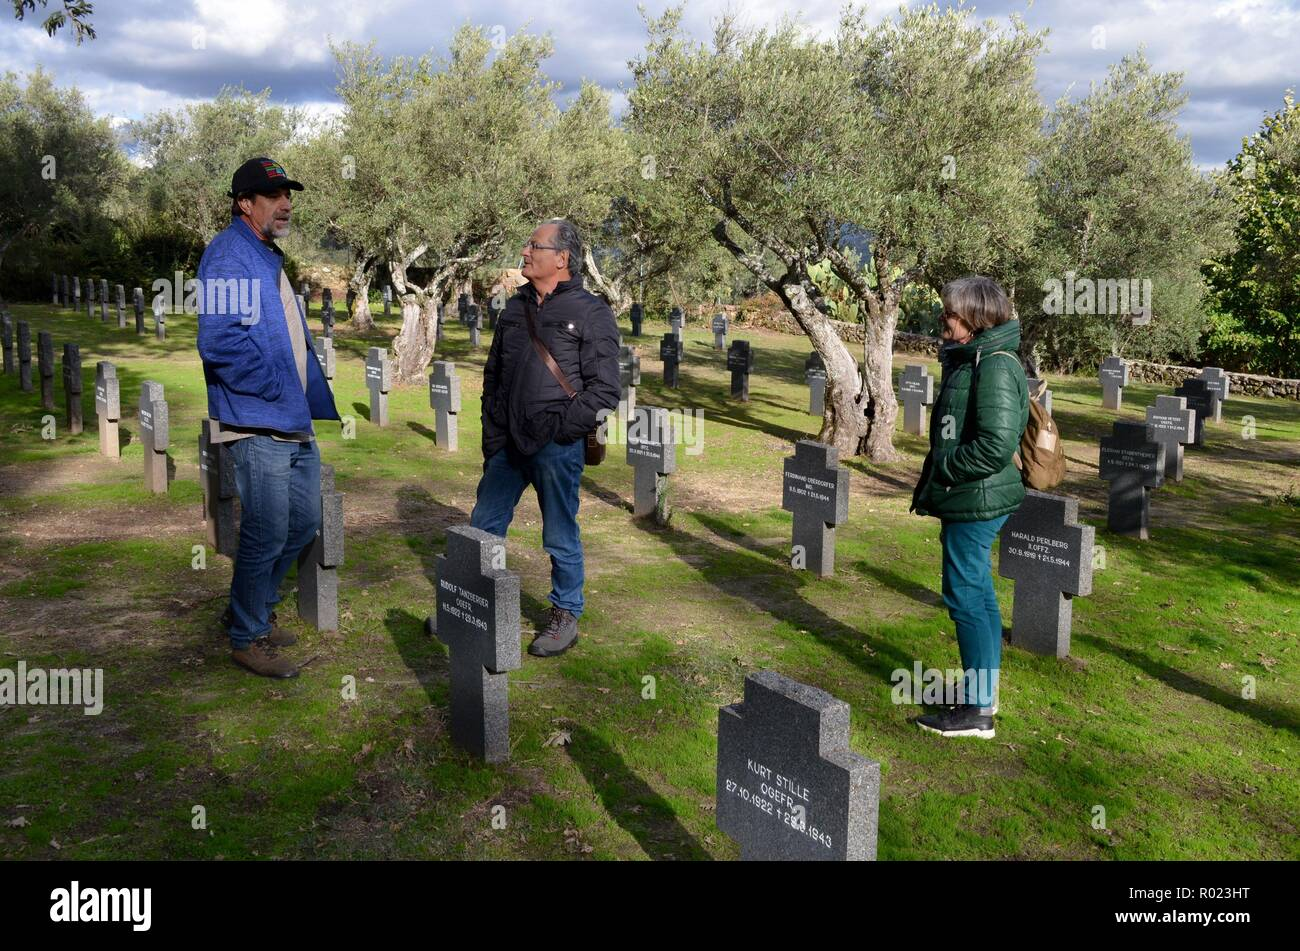 People visit the German cemetery in Cuacos de Yuste, Spain, 01 November 2018. The German cemetery in Cuacos de Yuste is the only cemetery in Spain where German soldiers who battled in the First and Second World War are buried. A total of 26 German soldiers from WWI and 154 from WWII are buried in this cemetery after they died in Spain while overflying the territory or while navigating Spanish seas. EFE/ Eduardo Palomo - Stock Image